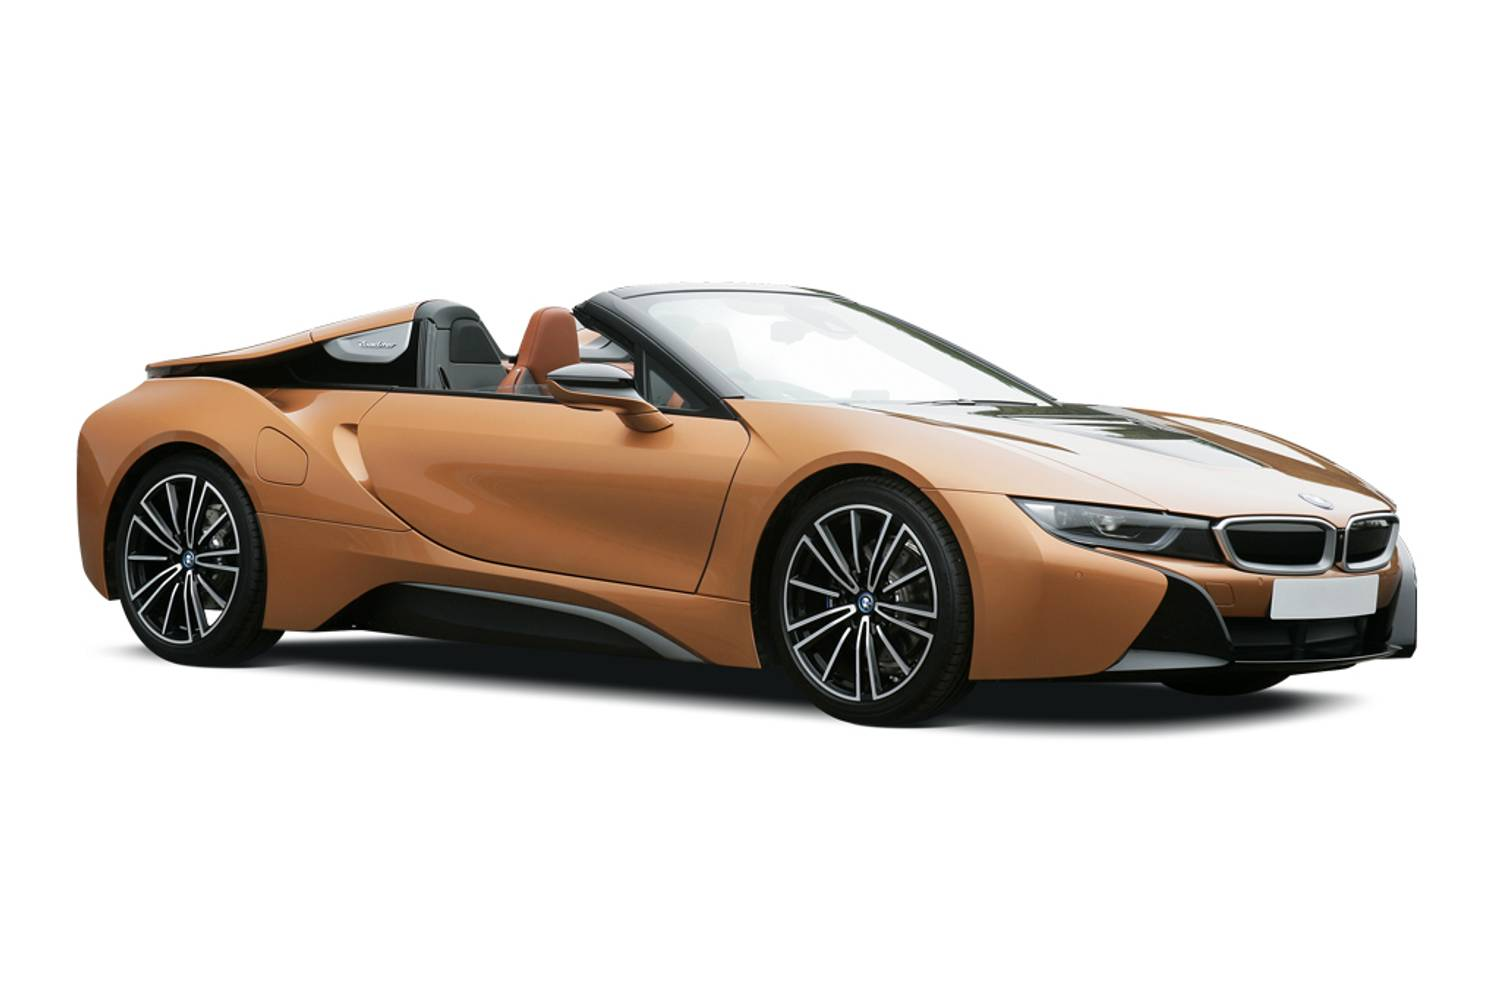 New Bmw I8 Roadster 2dr Auto 2018 For Sale